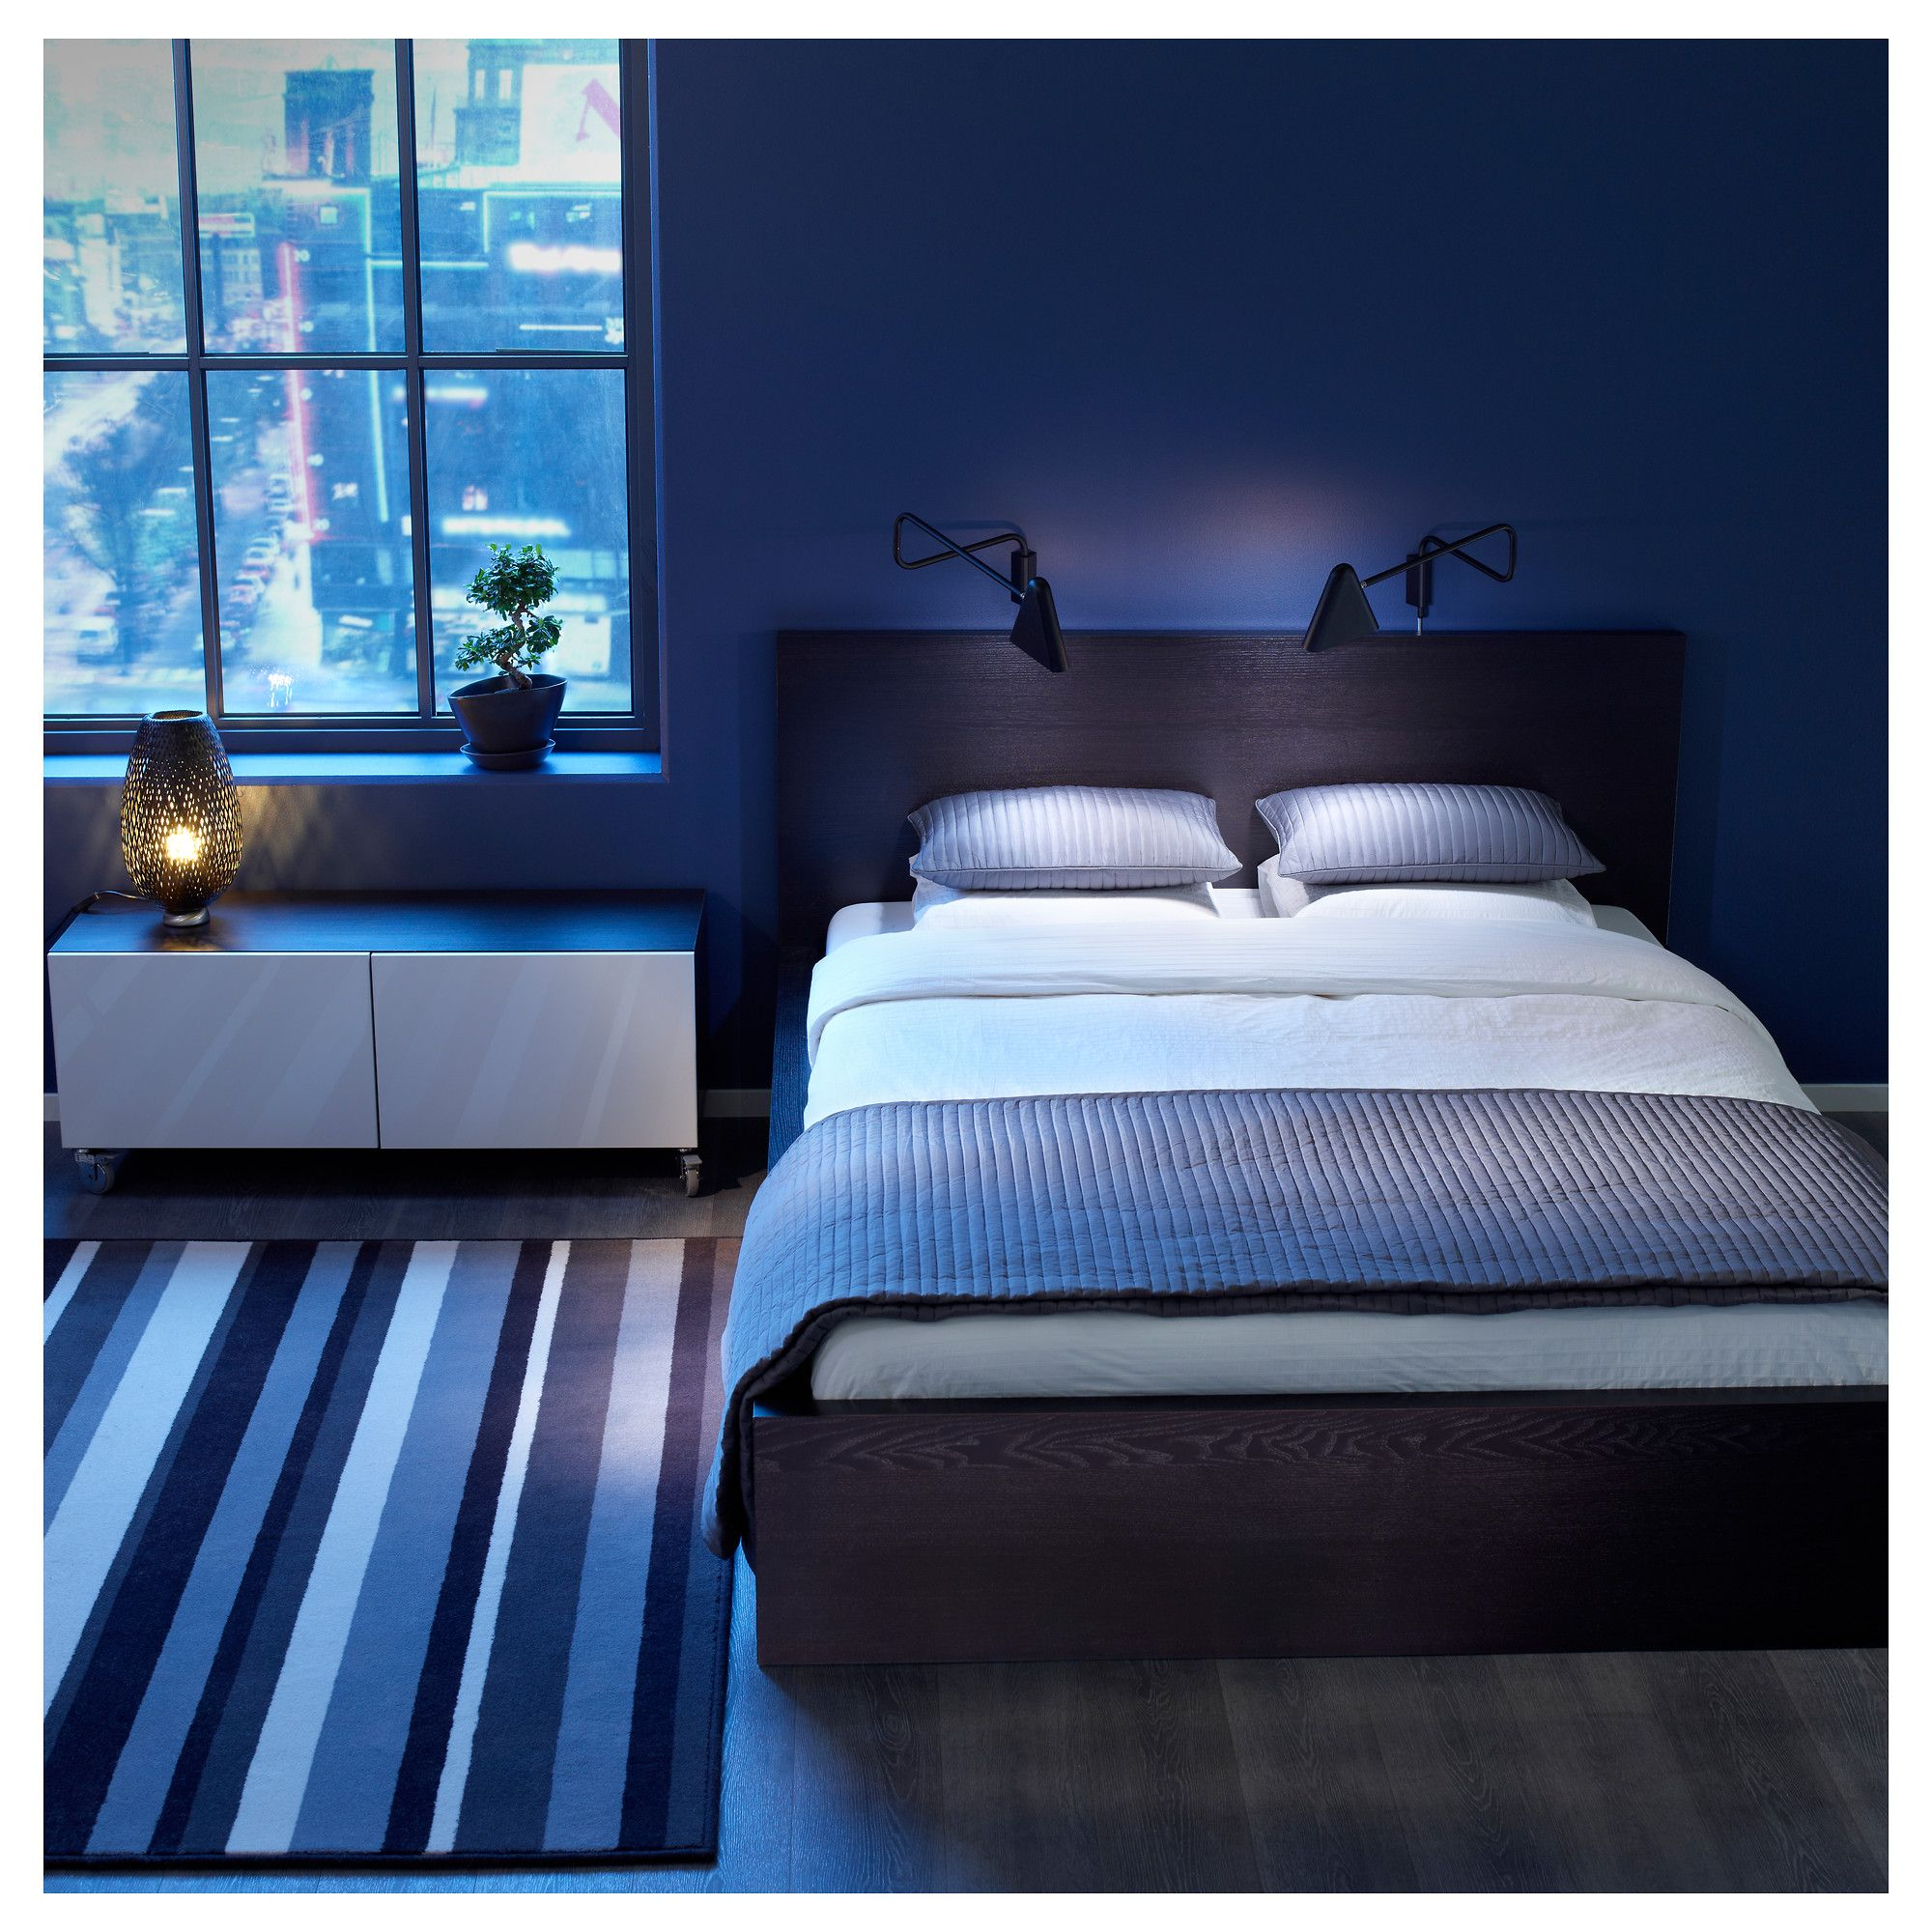 Dark blue bedrooms for girls - Appealing Small Girls Bedroom Idea With Espresso Wooden Twin Bed Frame And White Bedding Set And Small Girls Bedroomsnavy Blue